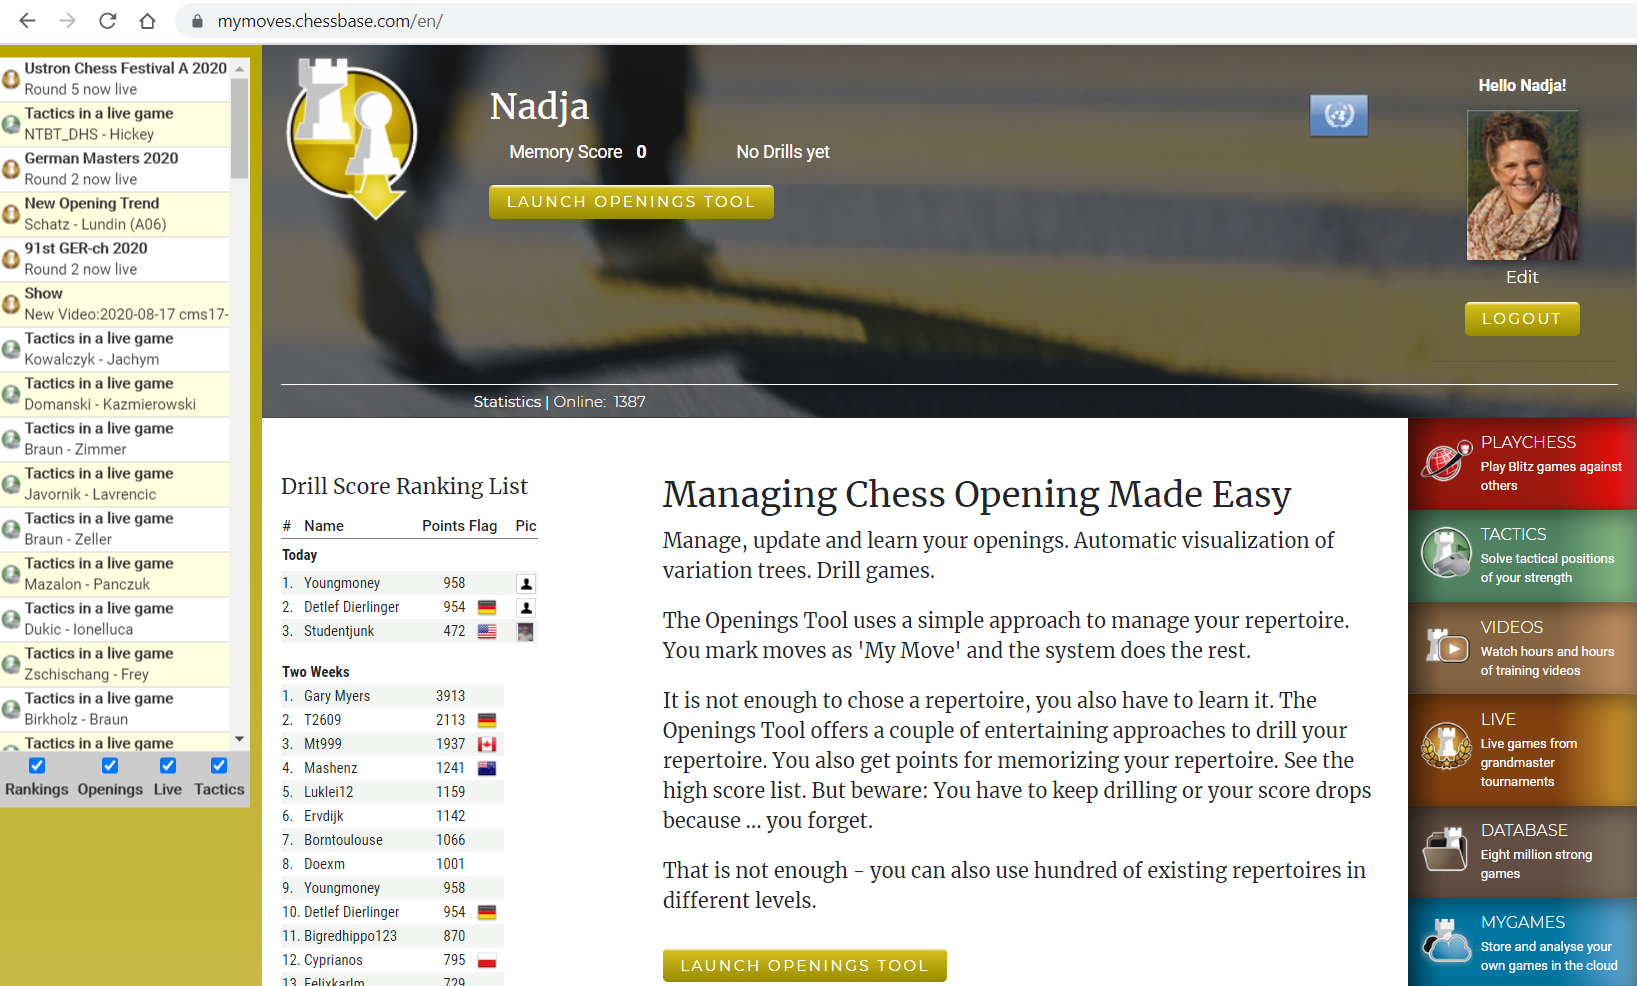 Opening training in the ChessBase Account web app